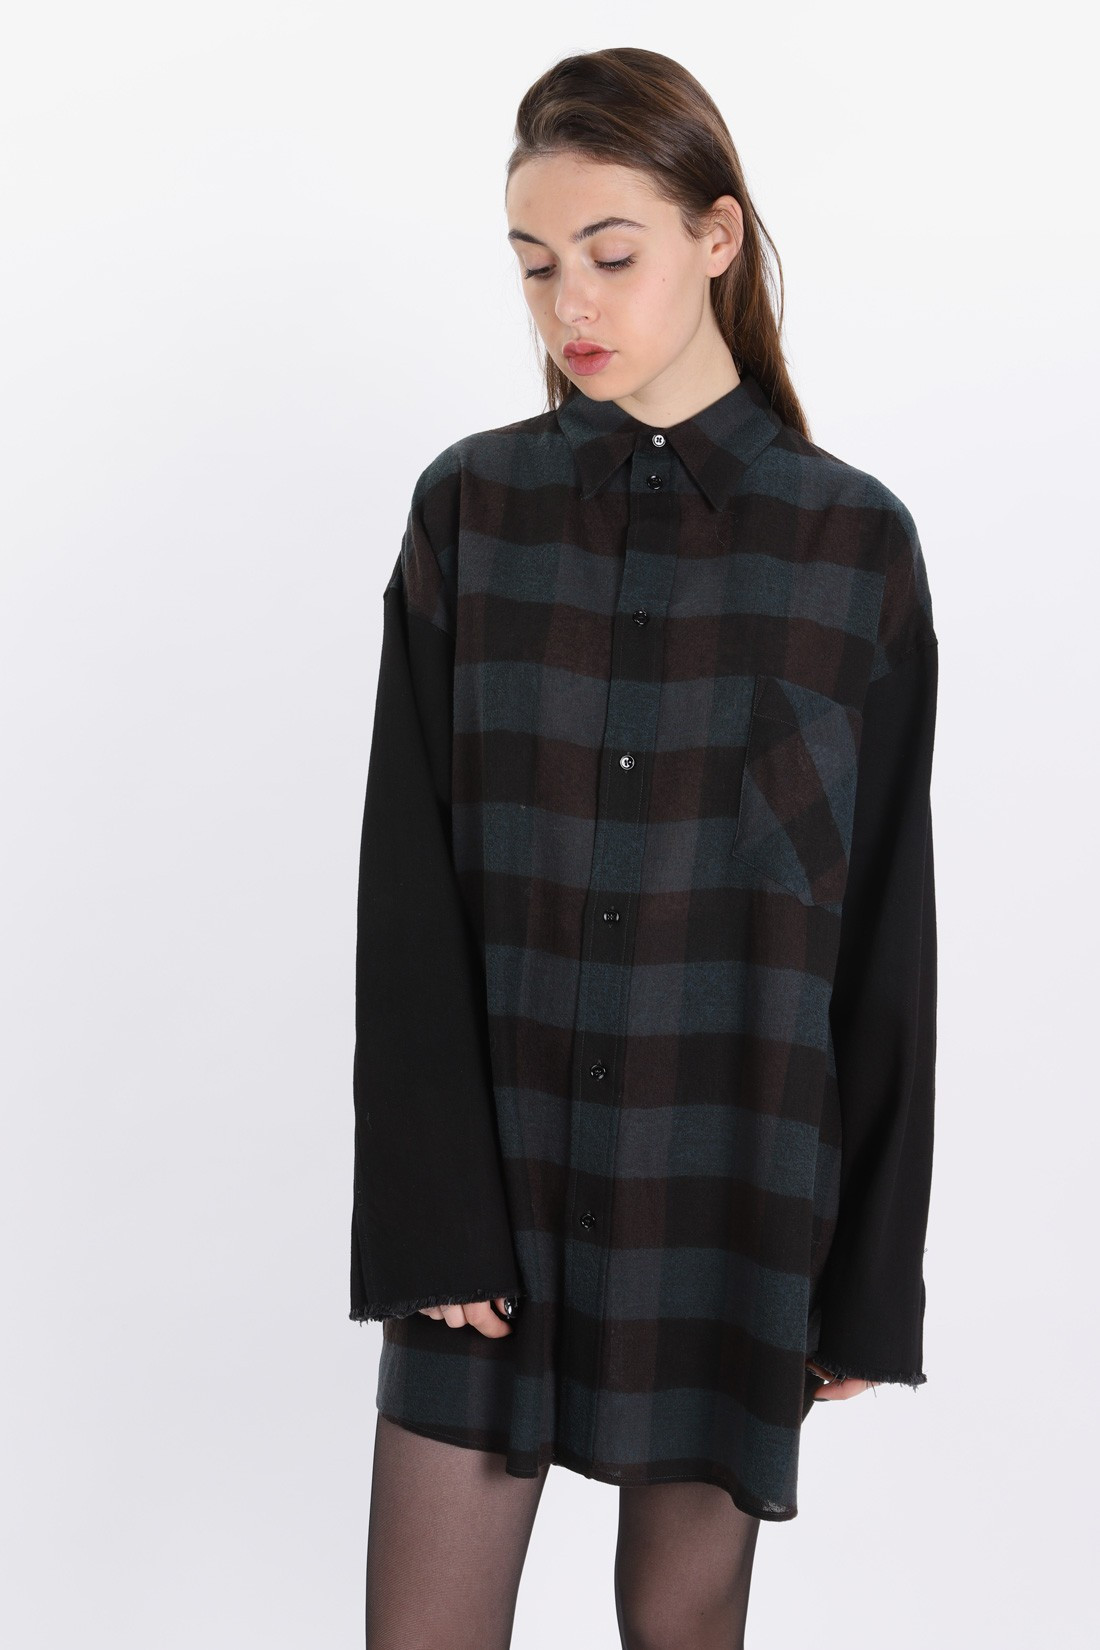 MM6 MAISON MARGIELA FOR WOMAN / Wool shirt dress Green/black